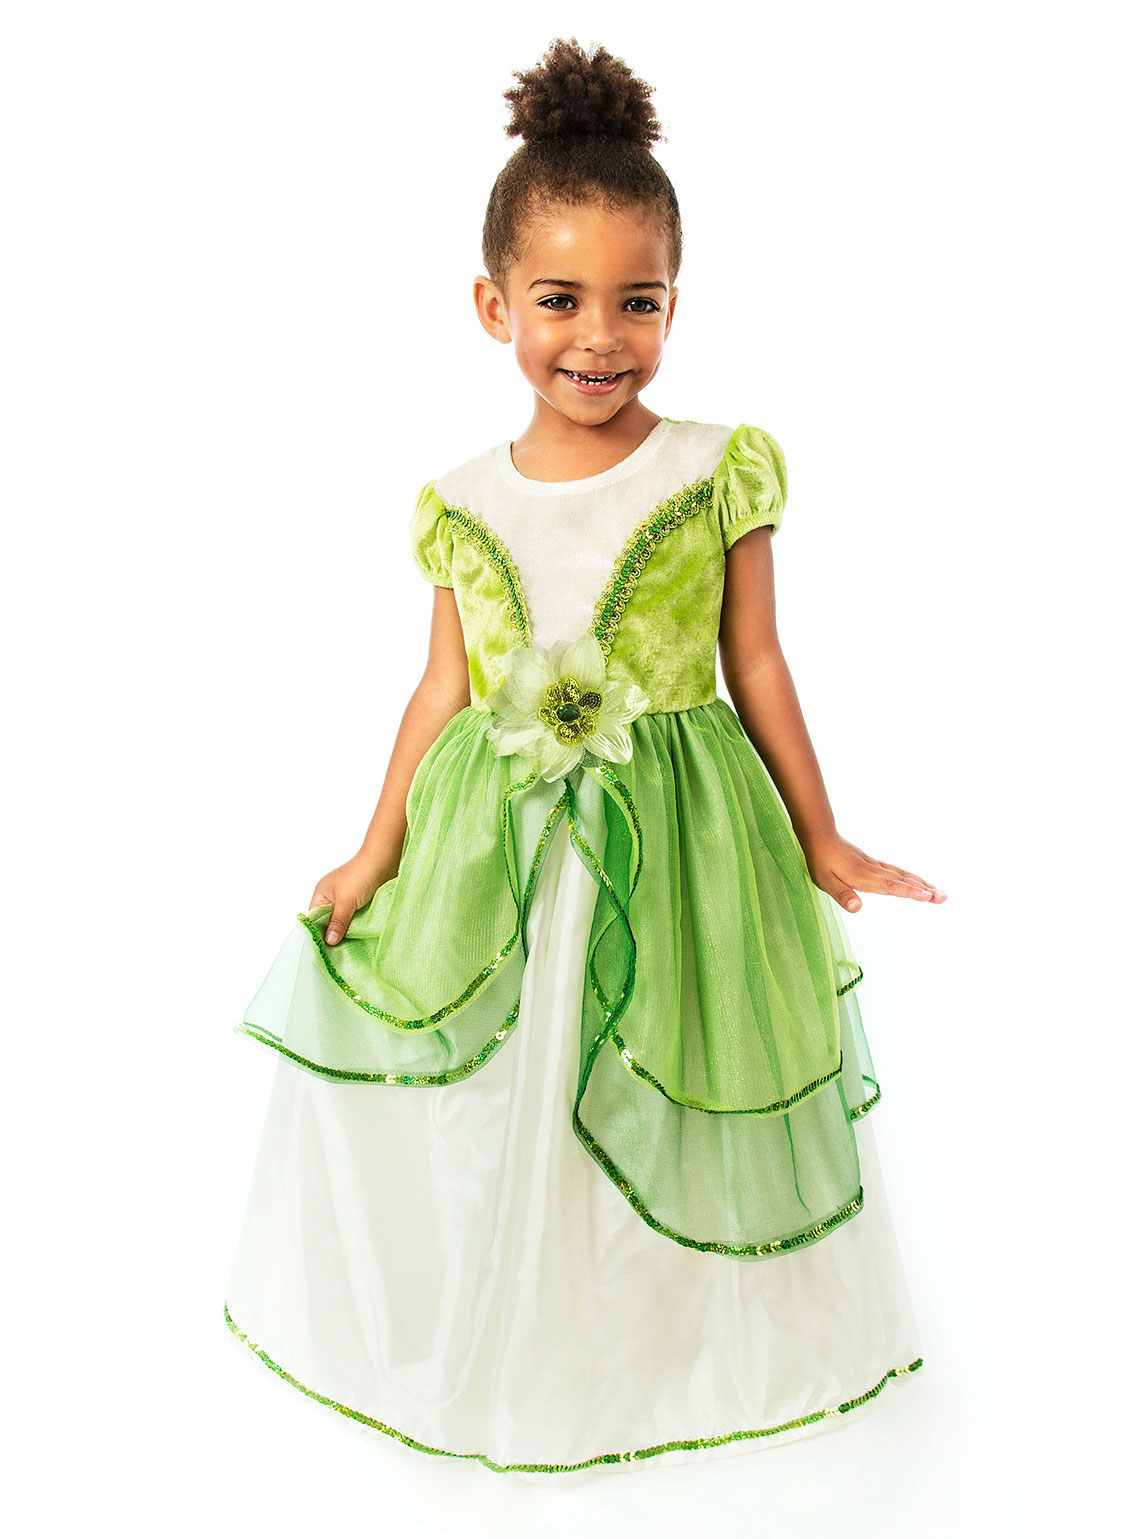 Girls Costume Style Lily Pad Princess Flower